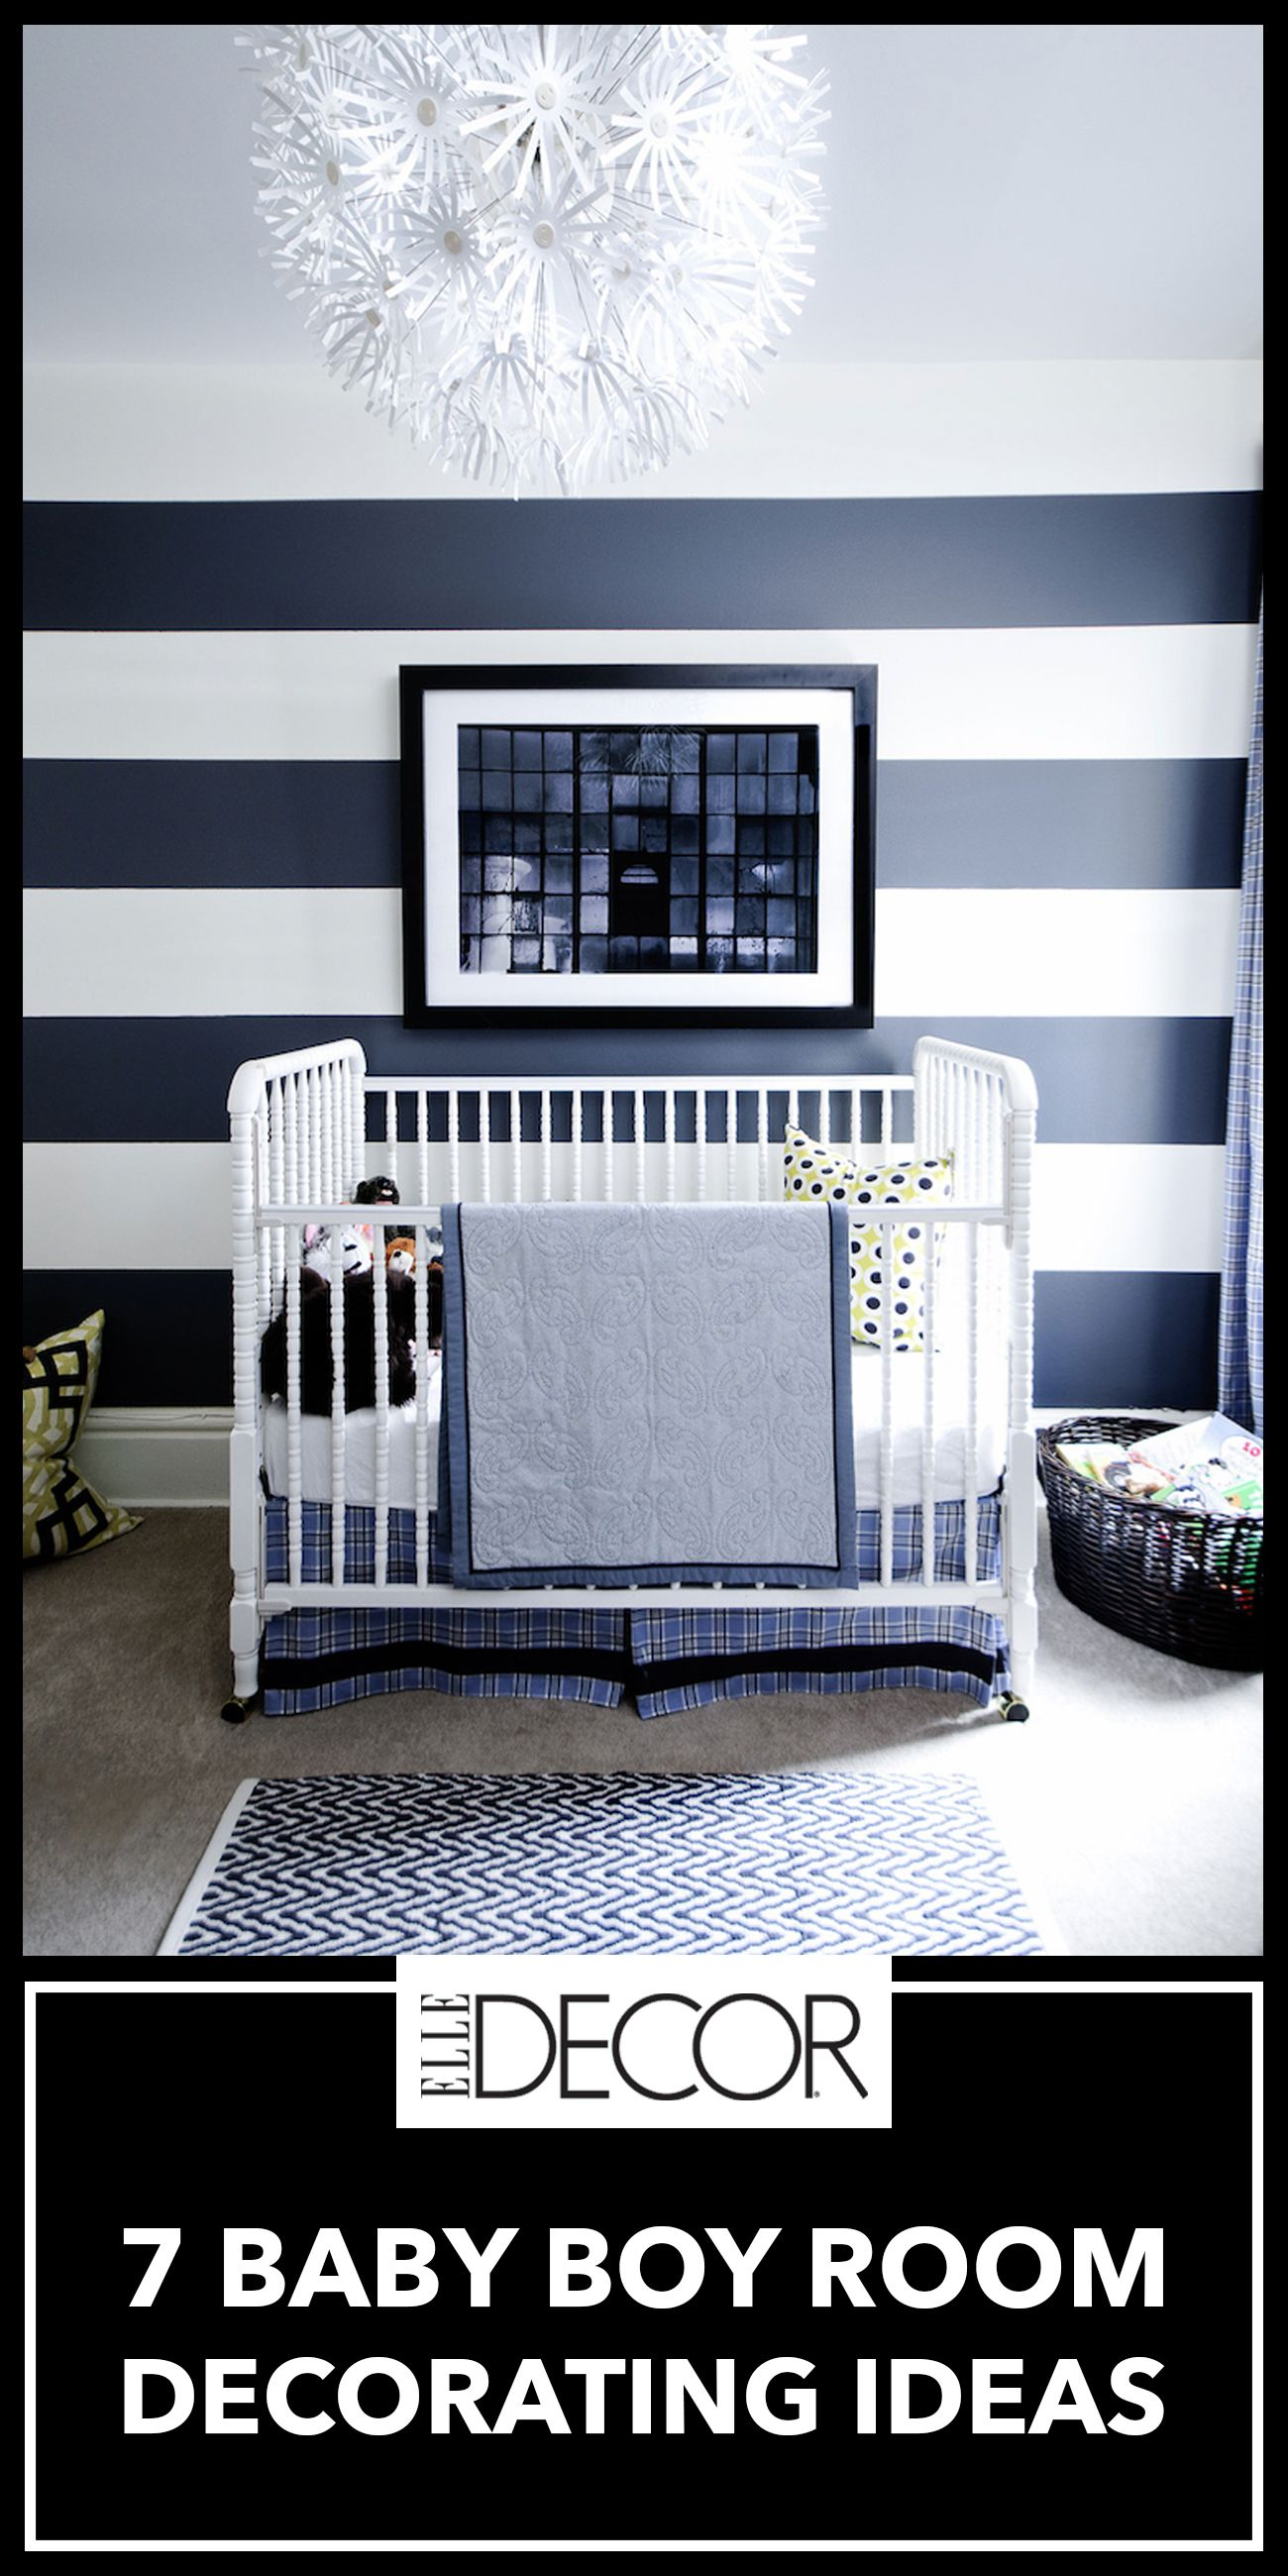 7 baby boy room ideas - cute boy nursery decorating ideas